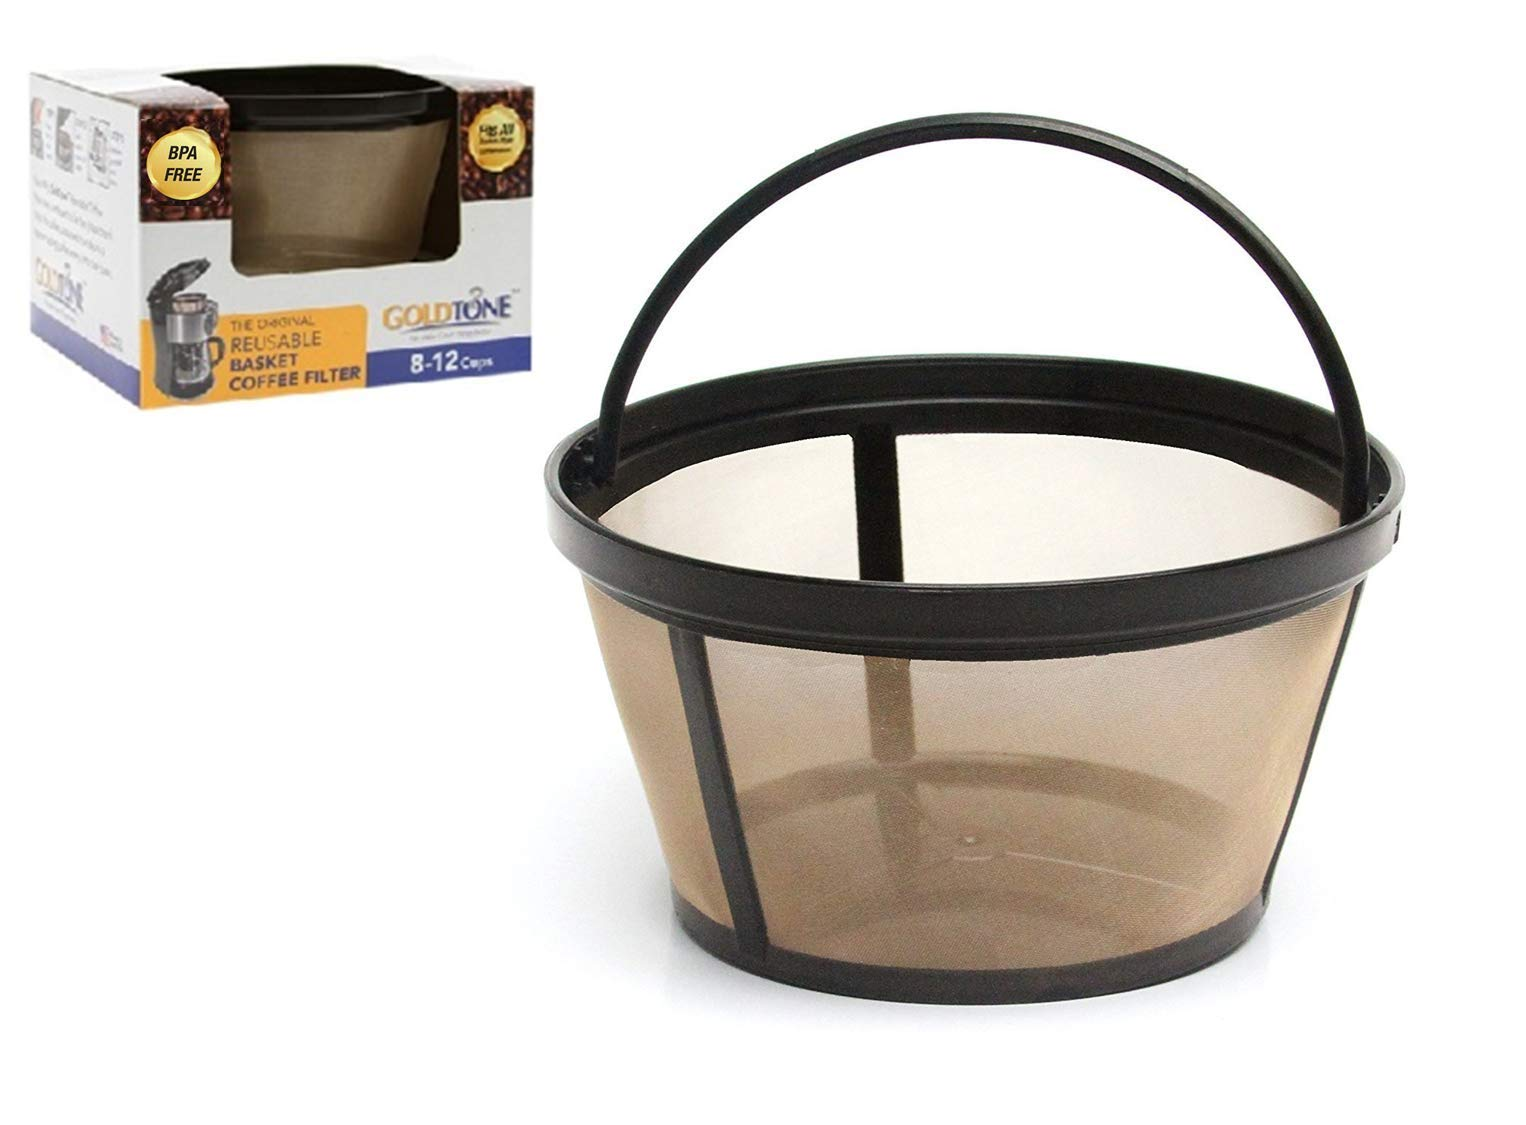 GOLDTONE Reusable 8-12 Cup Basket Coffee Filter fits Mr. Coffee Makers and Brewers, BPA Free by GoldTone (Image #1)